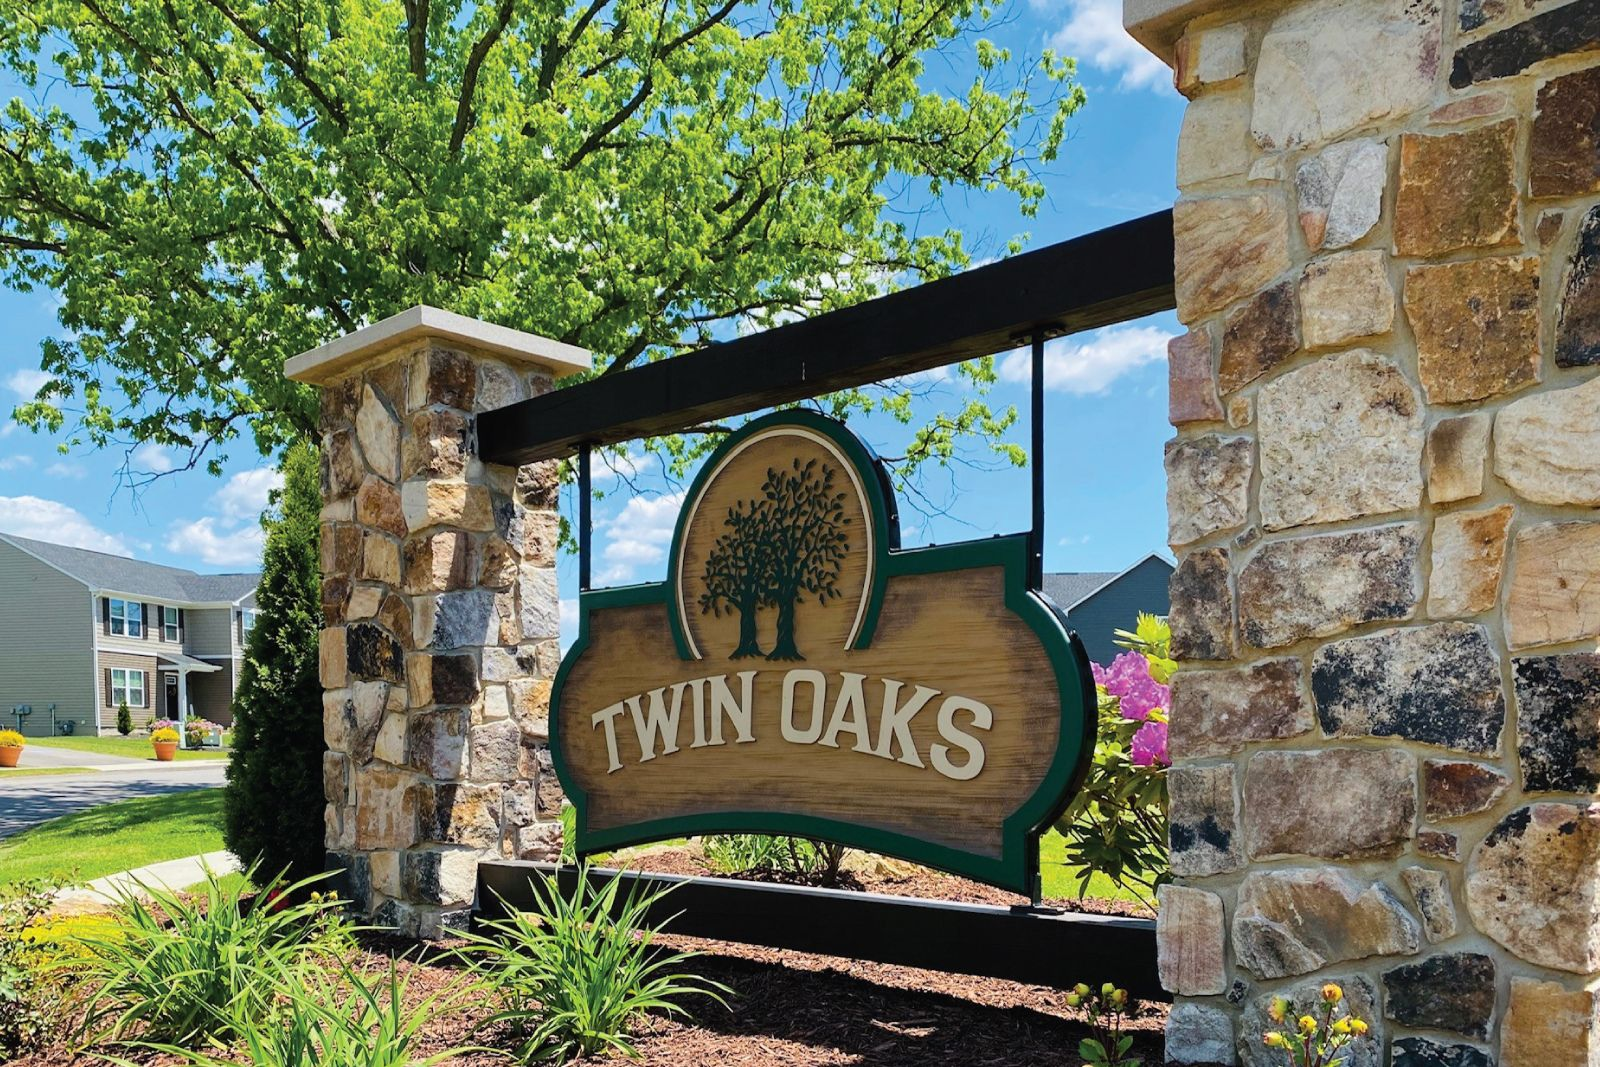 WELCOME HOME TO TWIN OAKS! SARVER'S PREMIERE NEW HOME COMMUNITY!:Lowest price new construction in Freeport School District w/ low Butler County taxes! Spacious homes offering 3-5 bedrooms on large usable homesites.Schedule your appointment today!